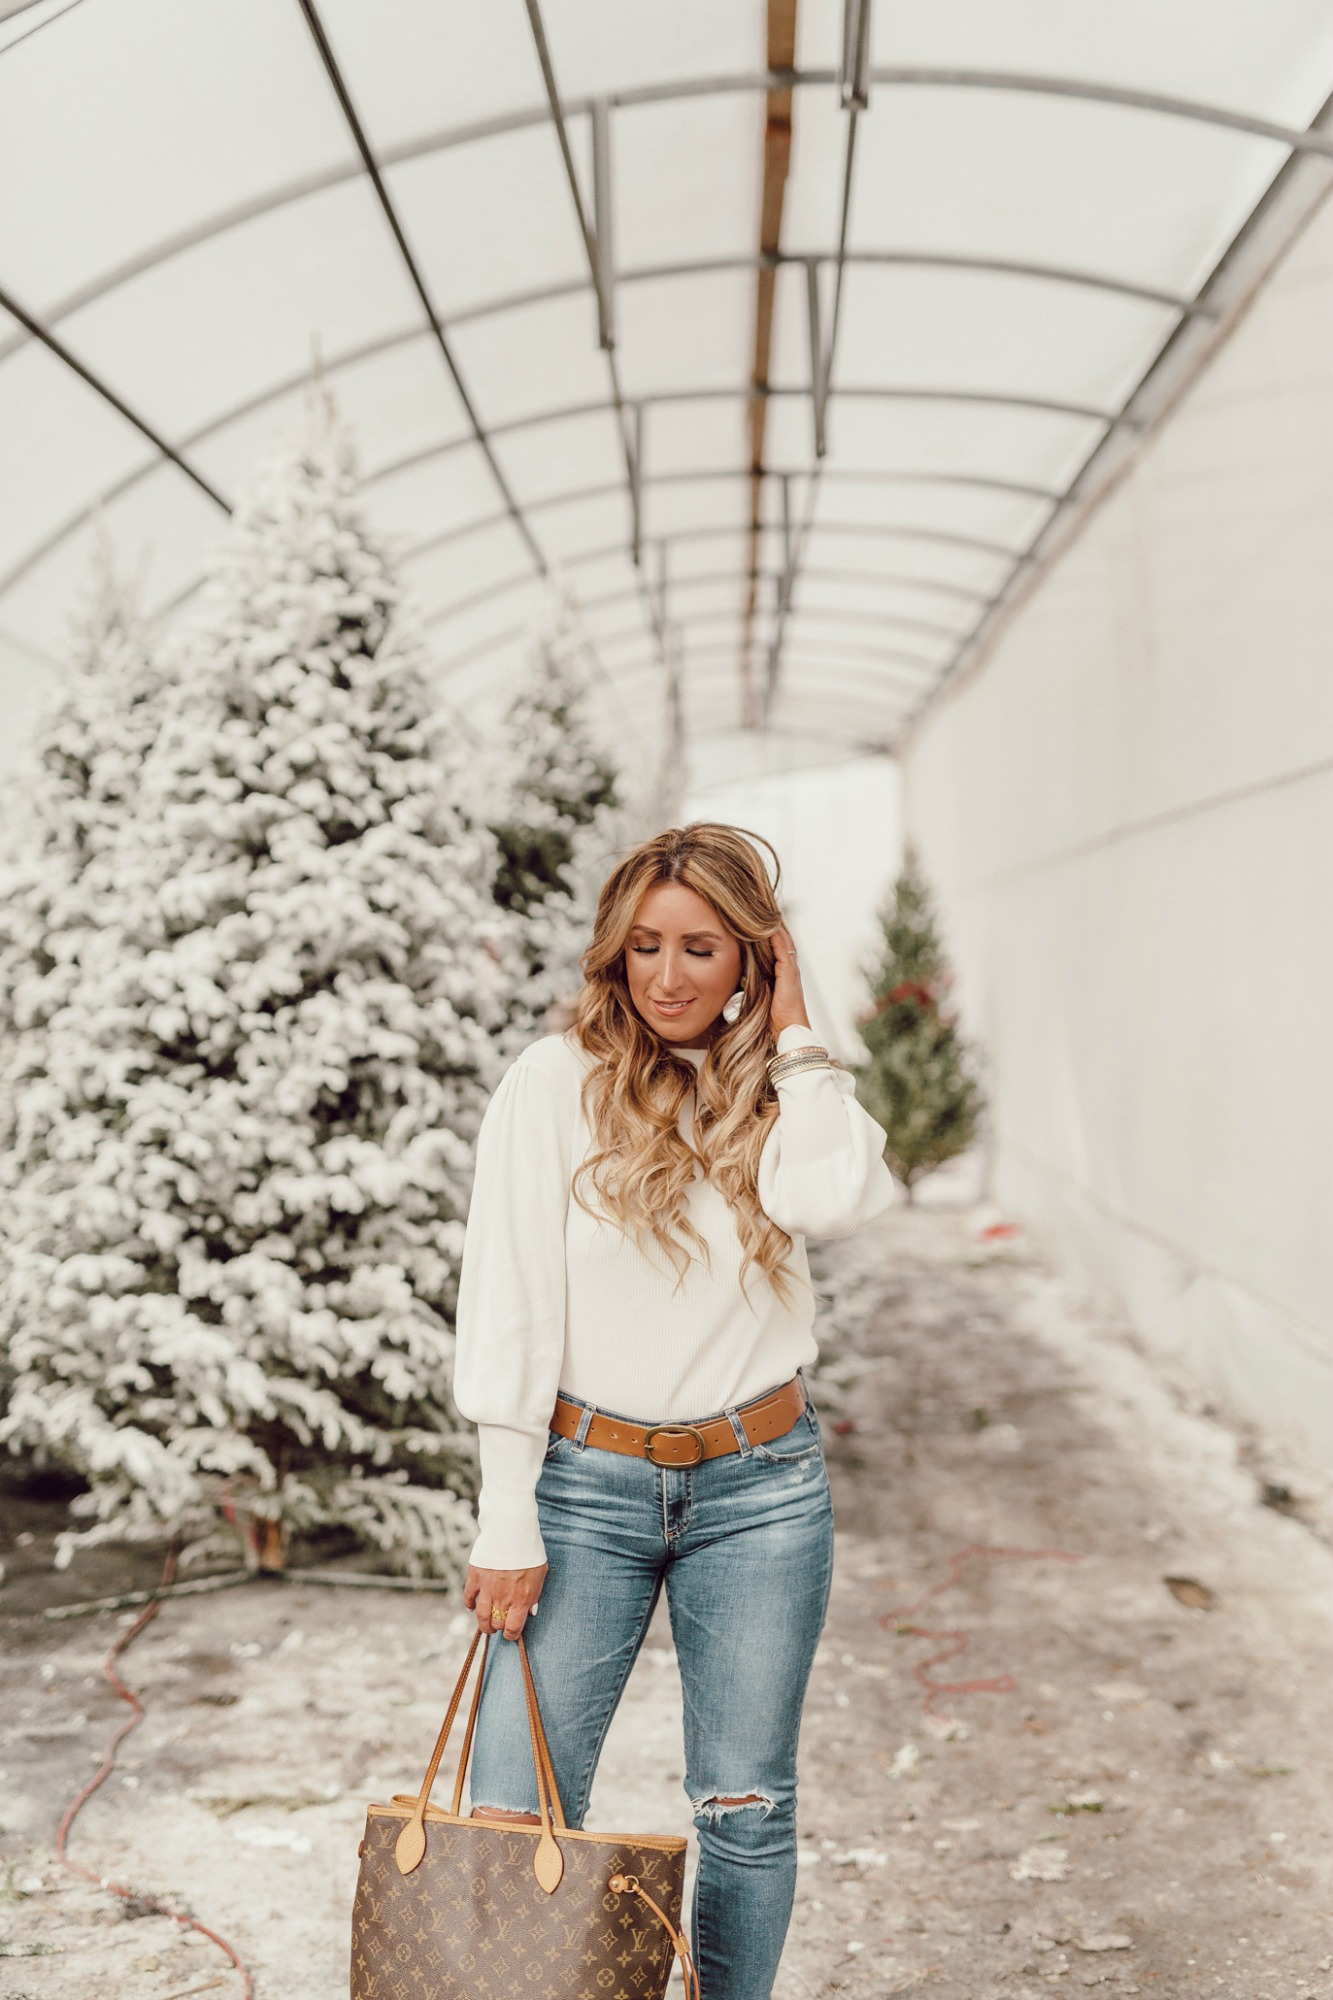 Cute Casual outfit ideas for winter